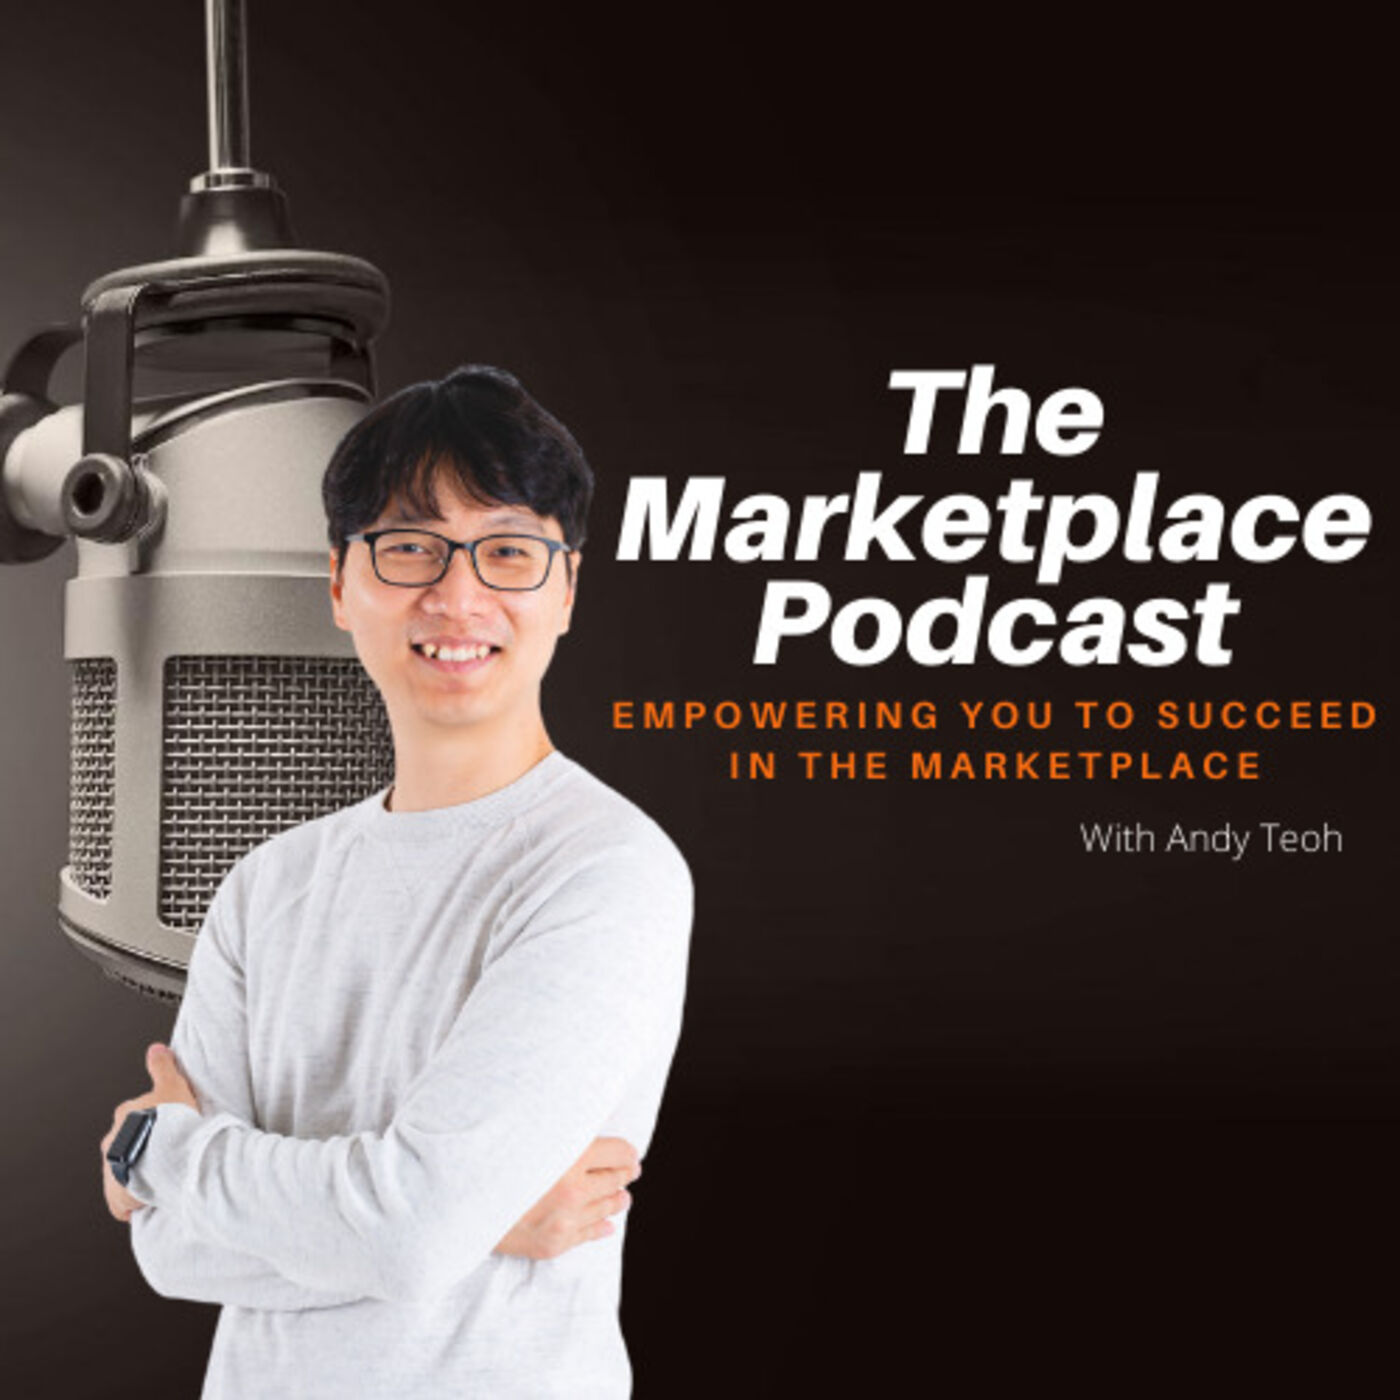 The Marketplace Podcast